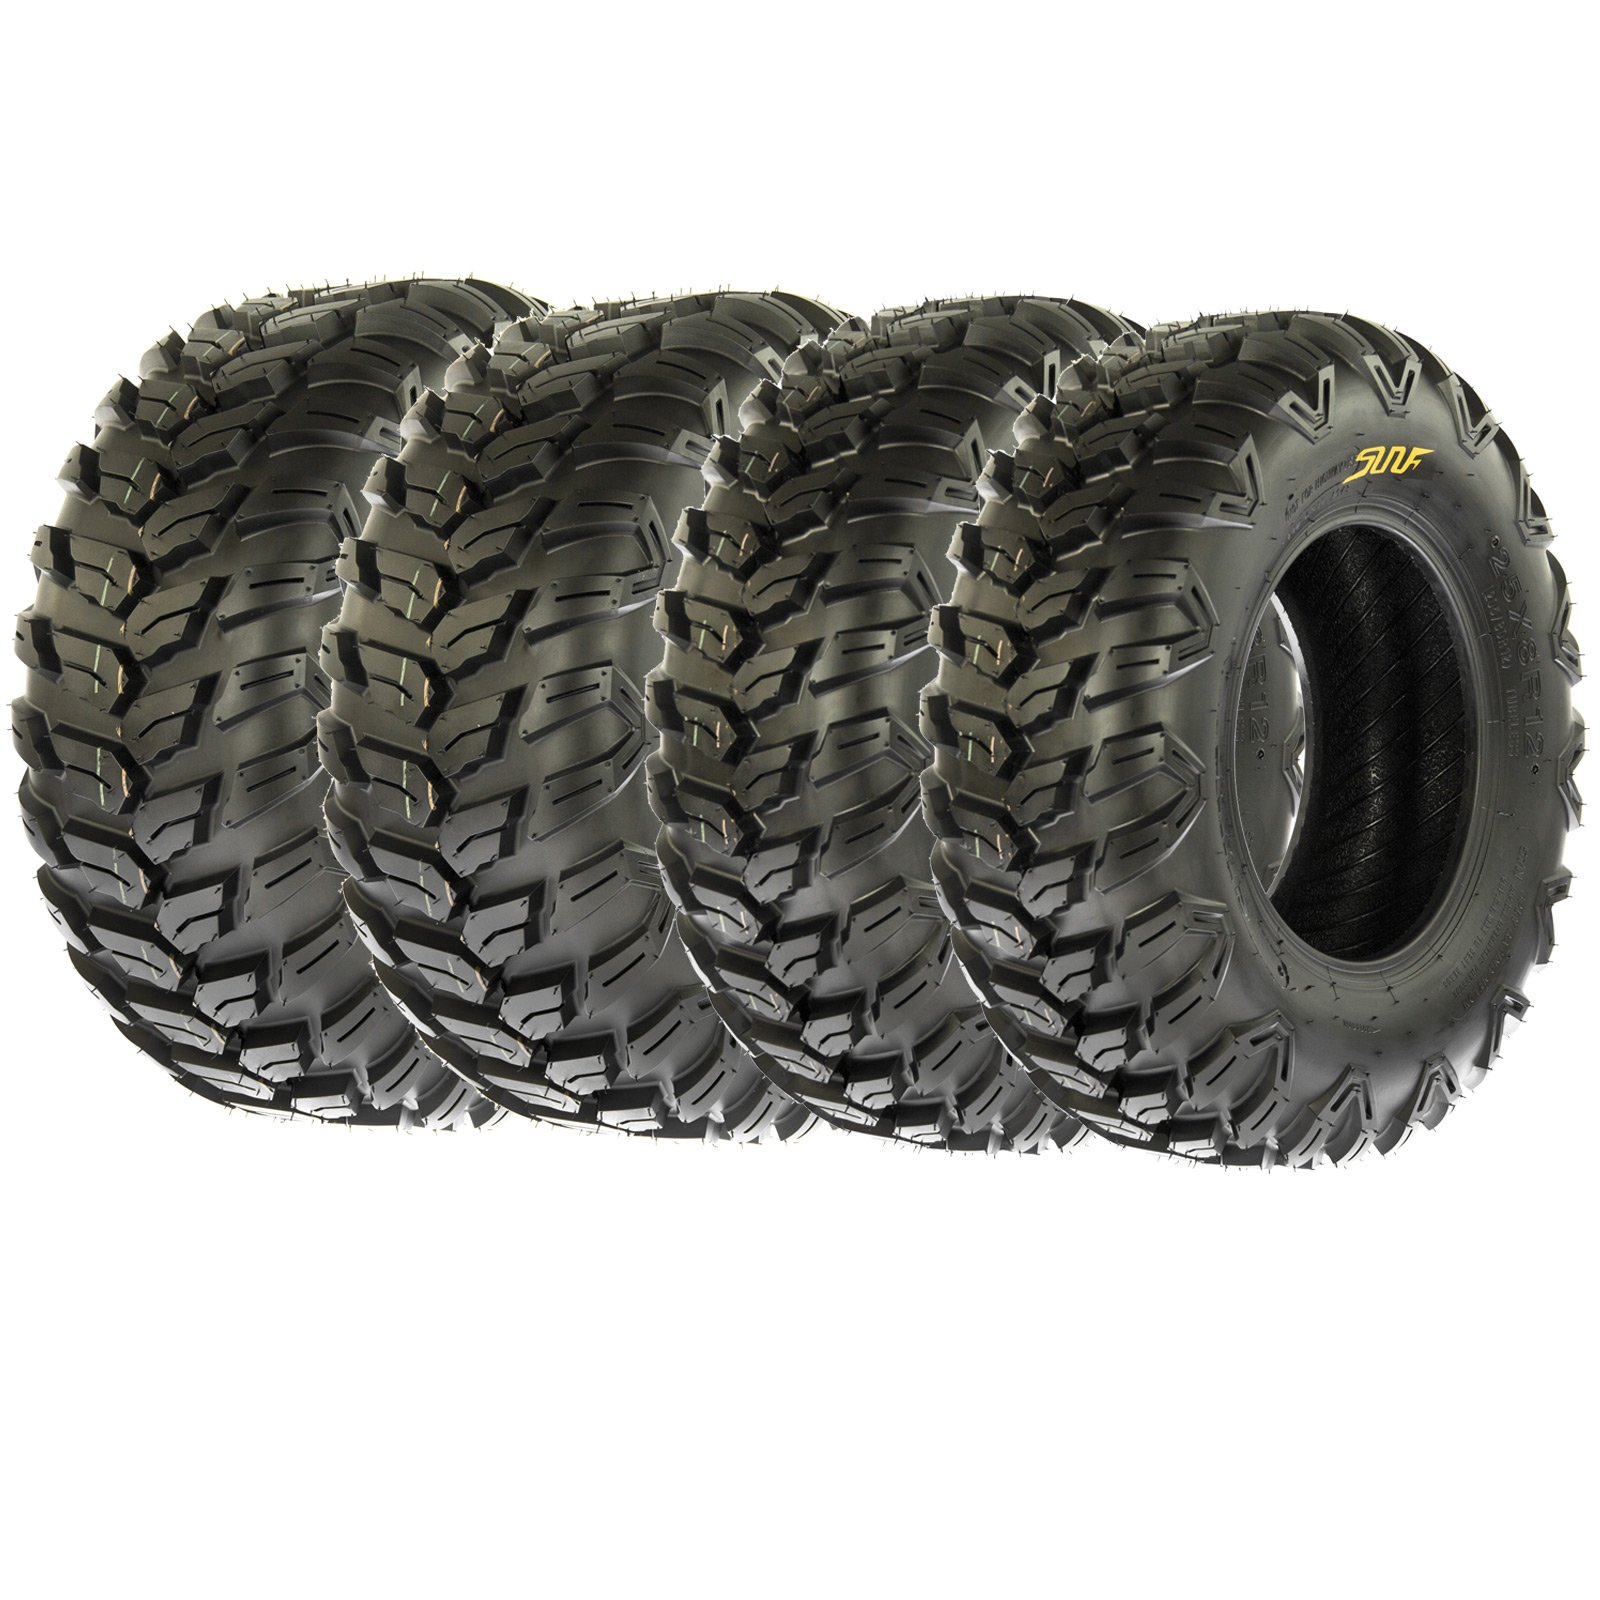 Set of 4 SunF A043 TT XC AT 26x9R12 Front & 26x11R12 Rear Sport ATV UTV Radial Tires, 6 PR, Hardpack All Terrain